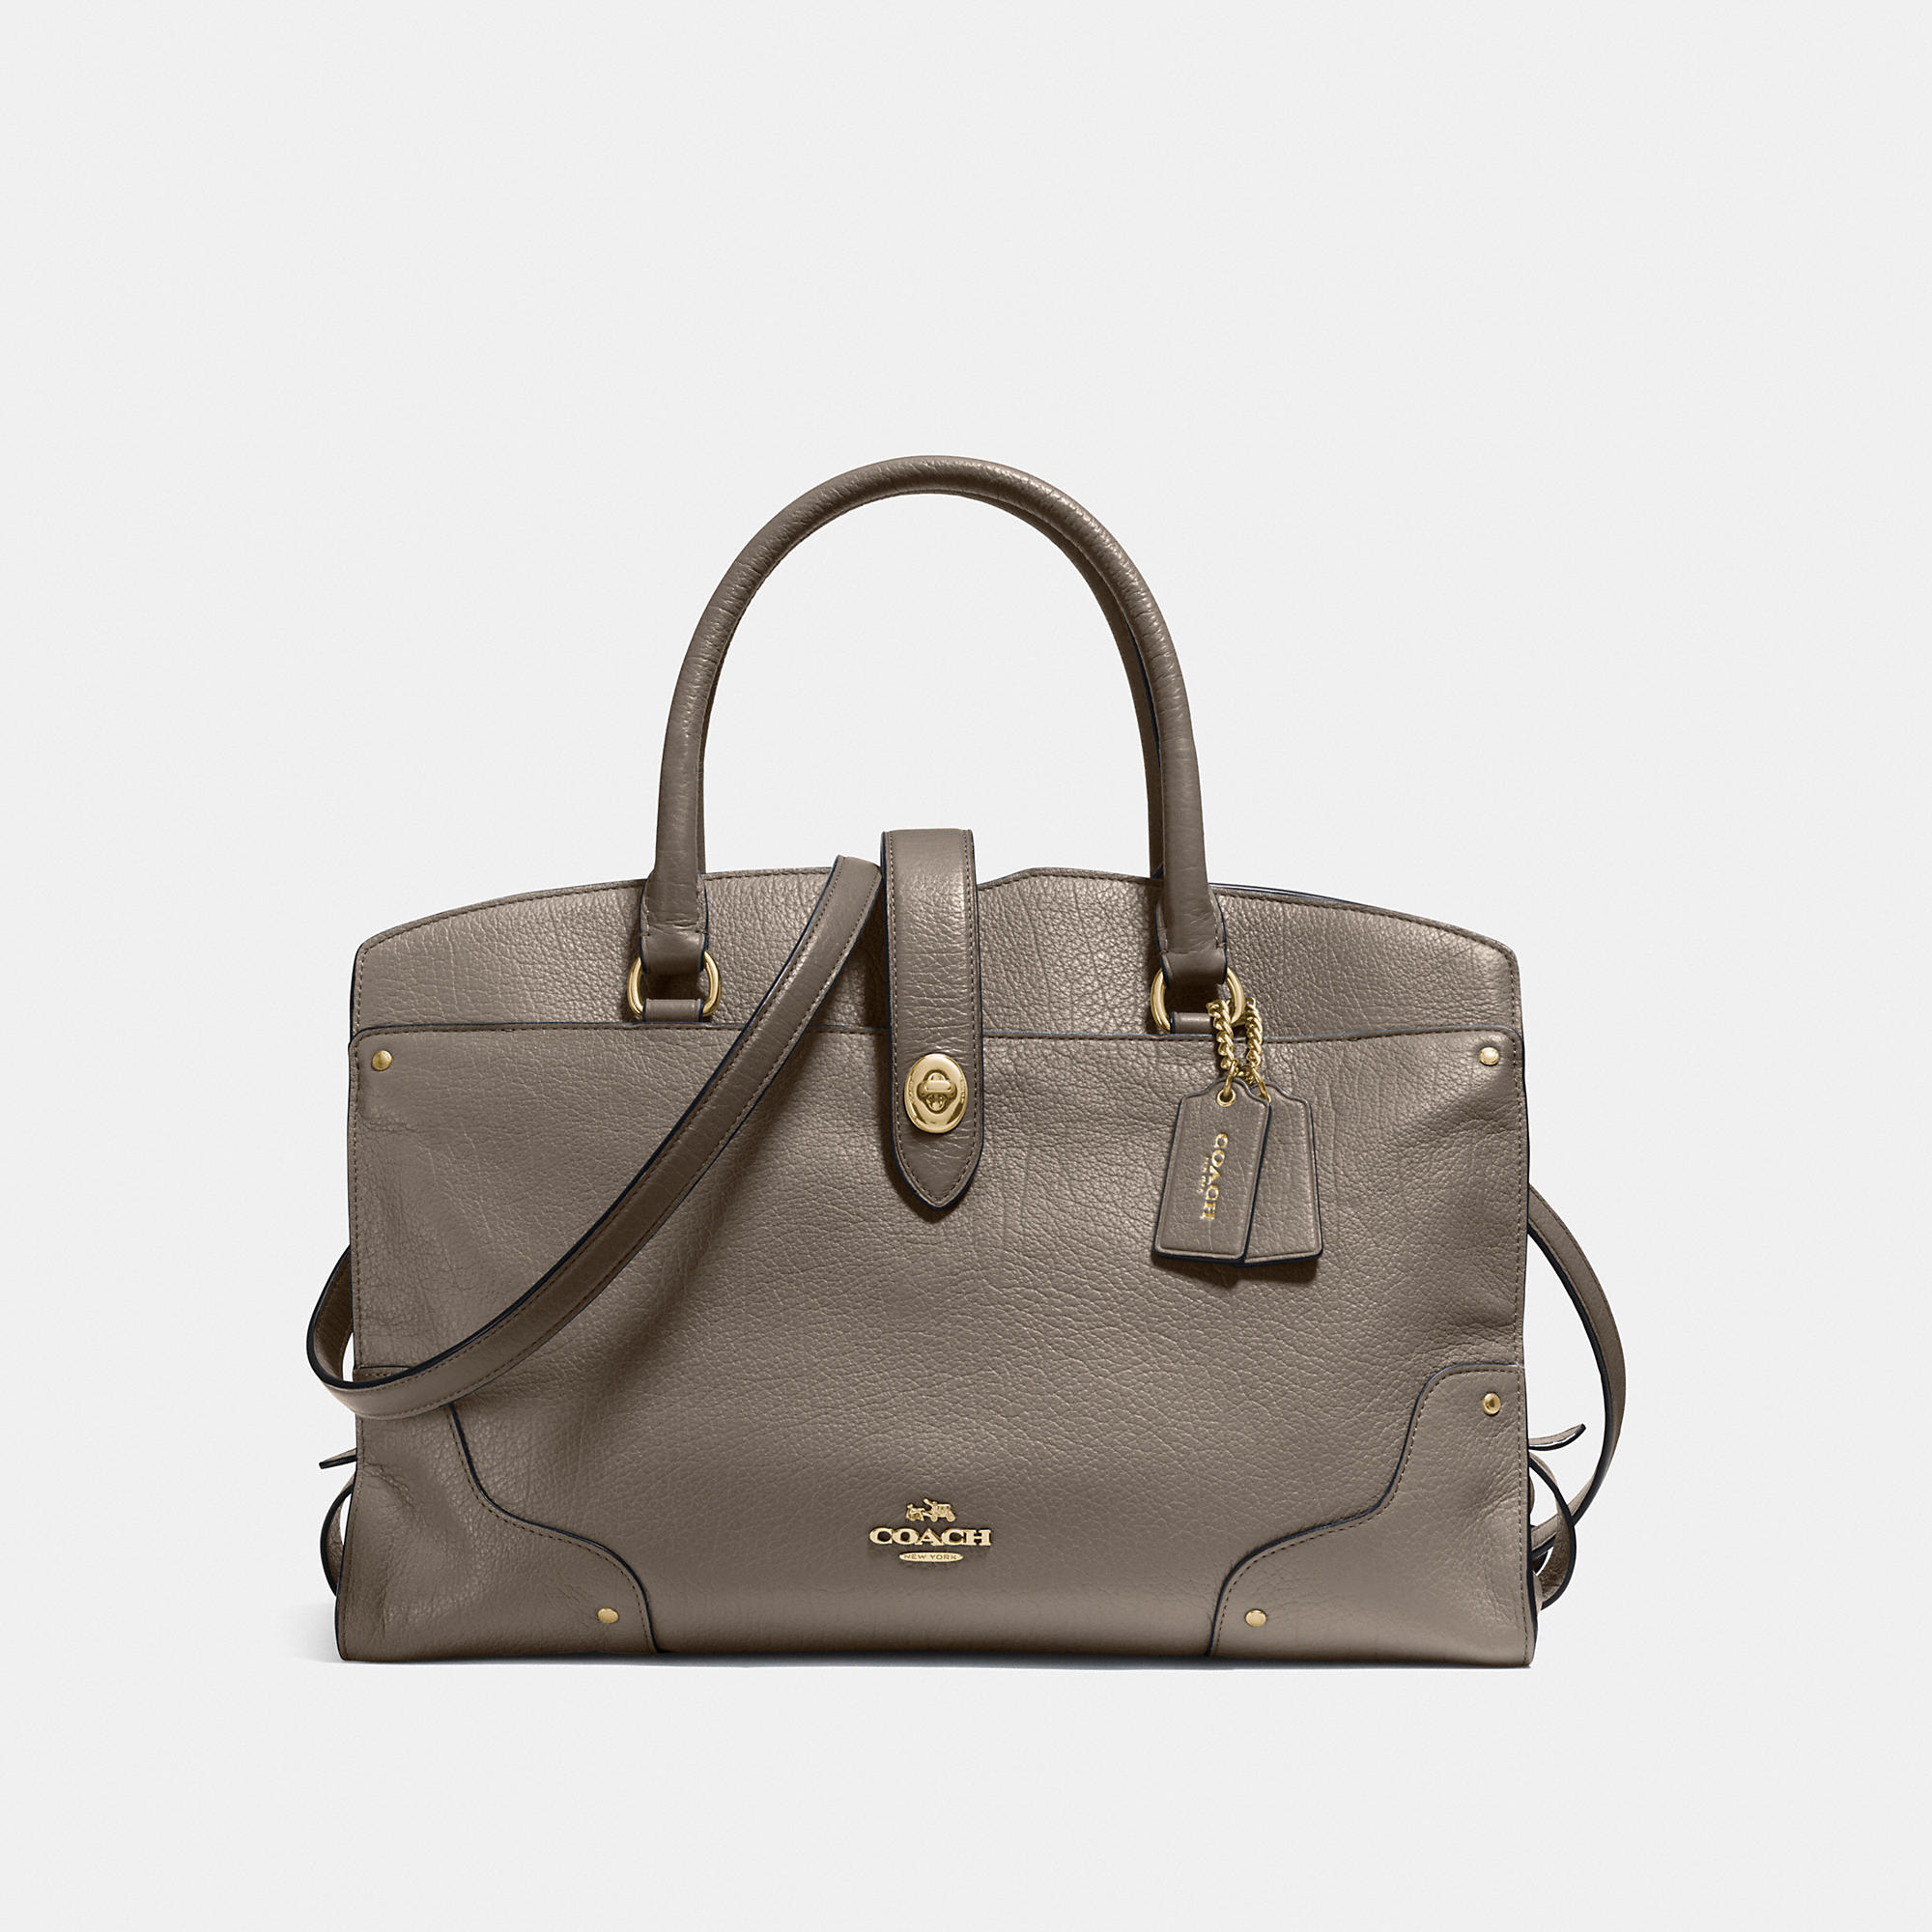 Coach Mercer Satchel in Grain Leather